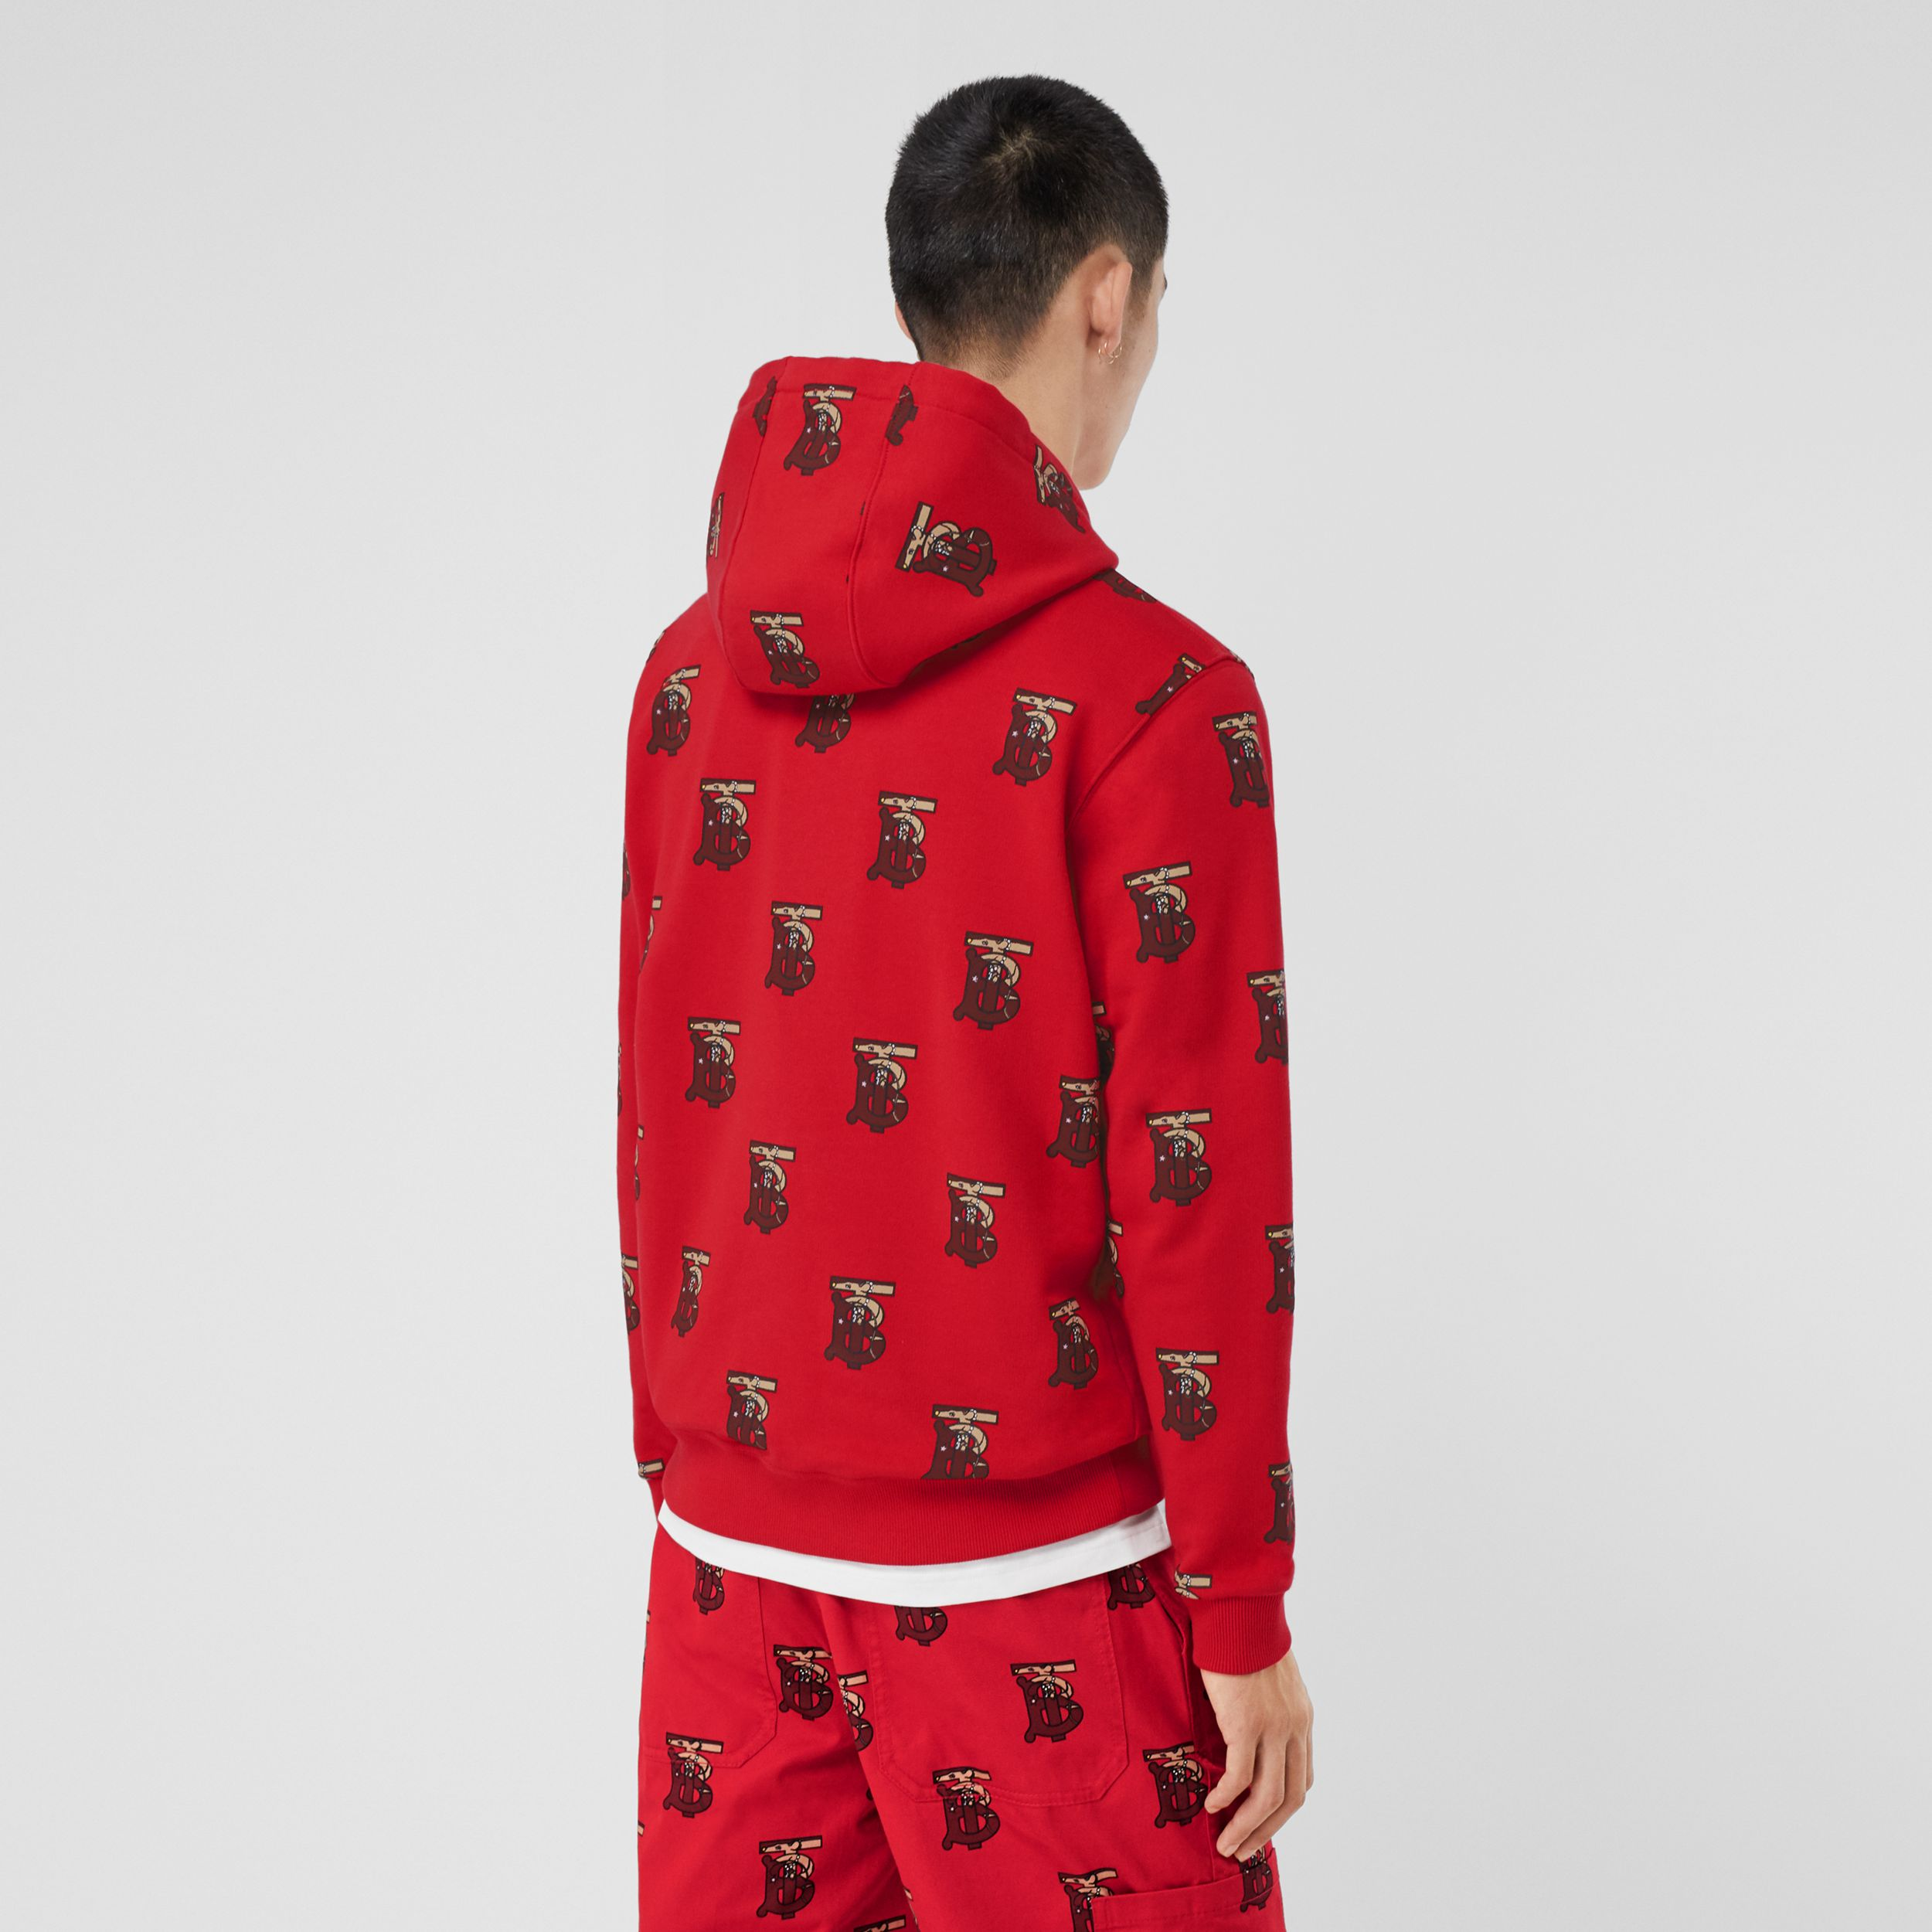 Monogram Motif Cotton Oversized Hoodie in Bright Red - Men | Burberry - 3